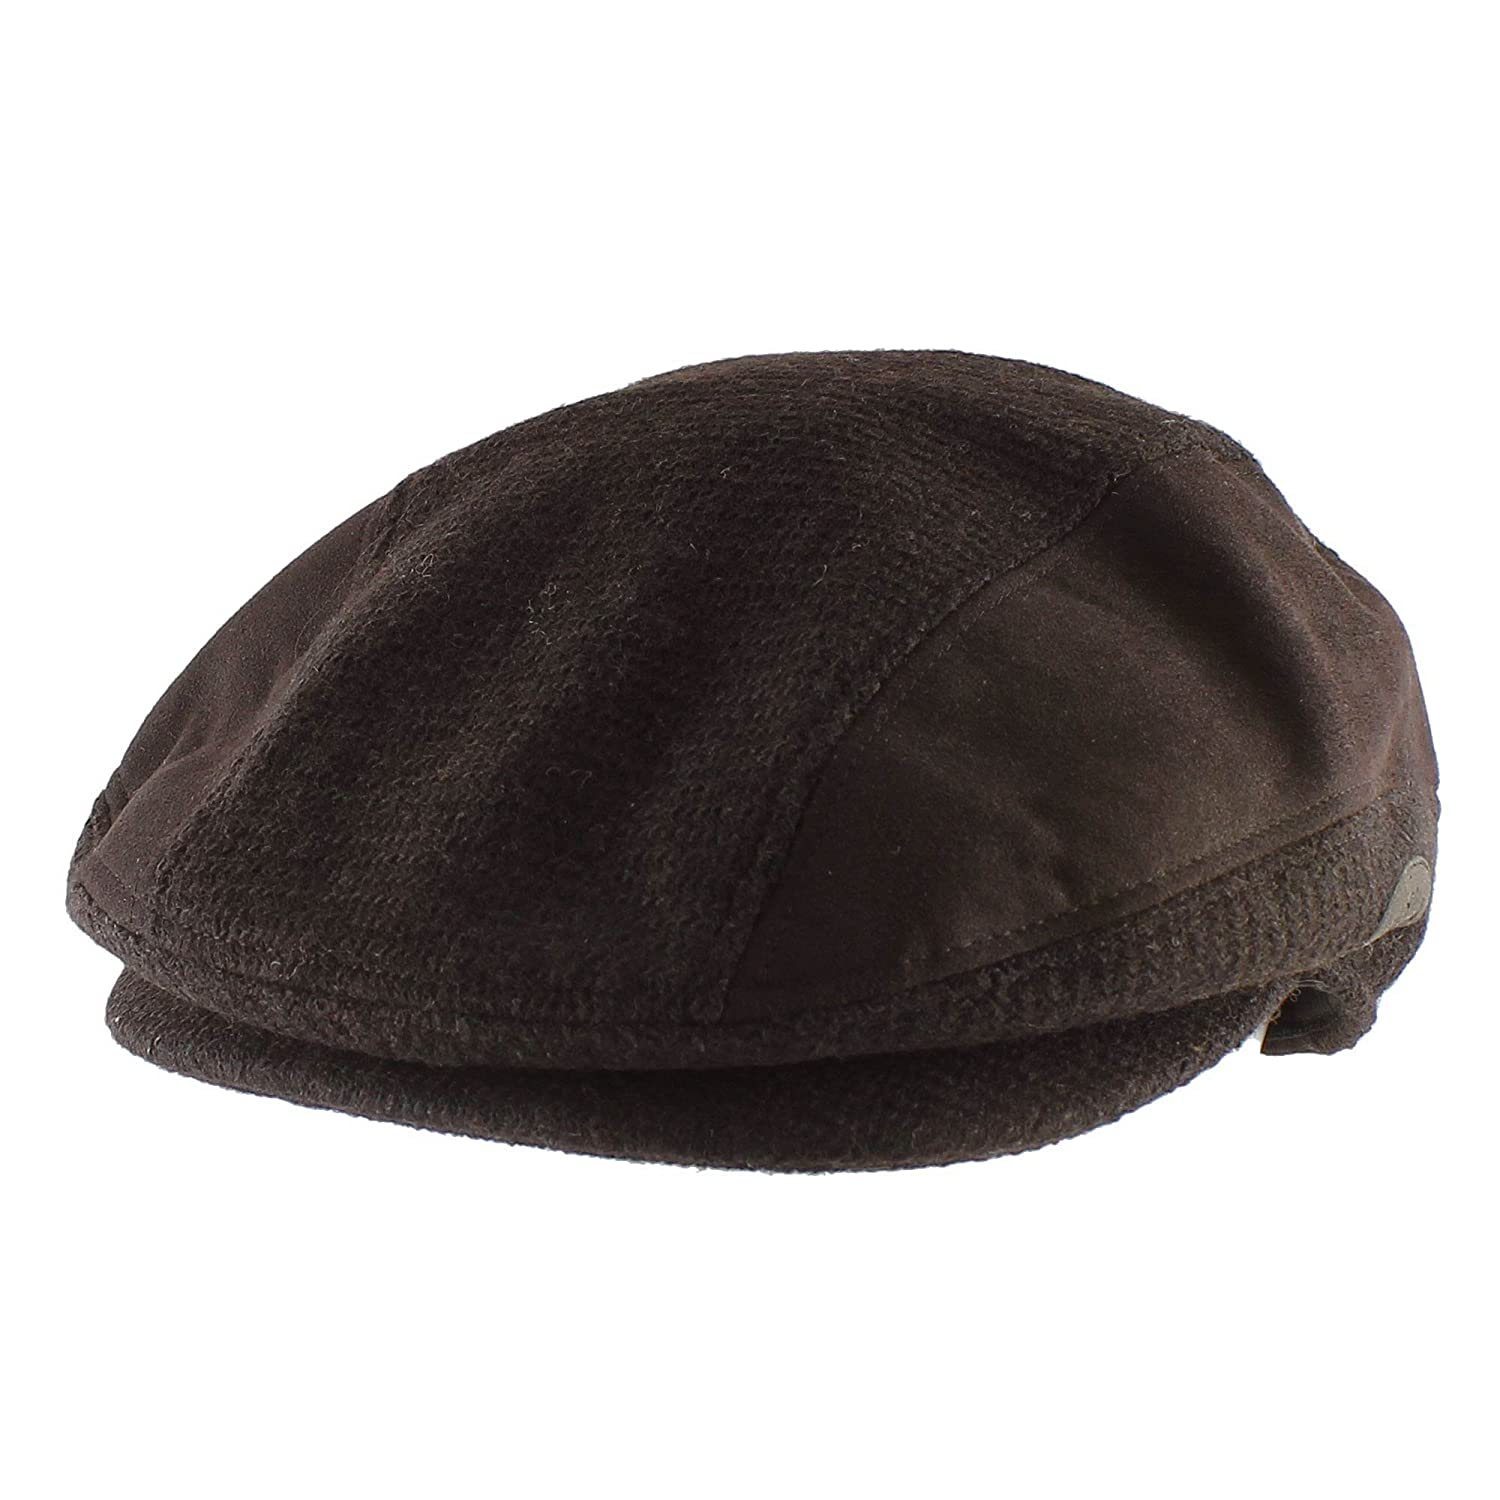 079459a7bcd Morehats Soft Faux Wool Warm Newsboy Cap Gatsby Golf Hat - Olive at Amazon  Men s Clothing store